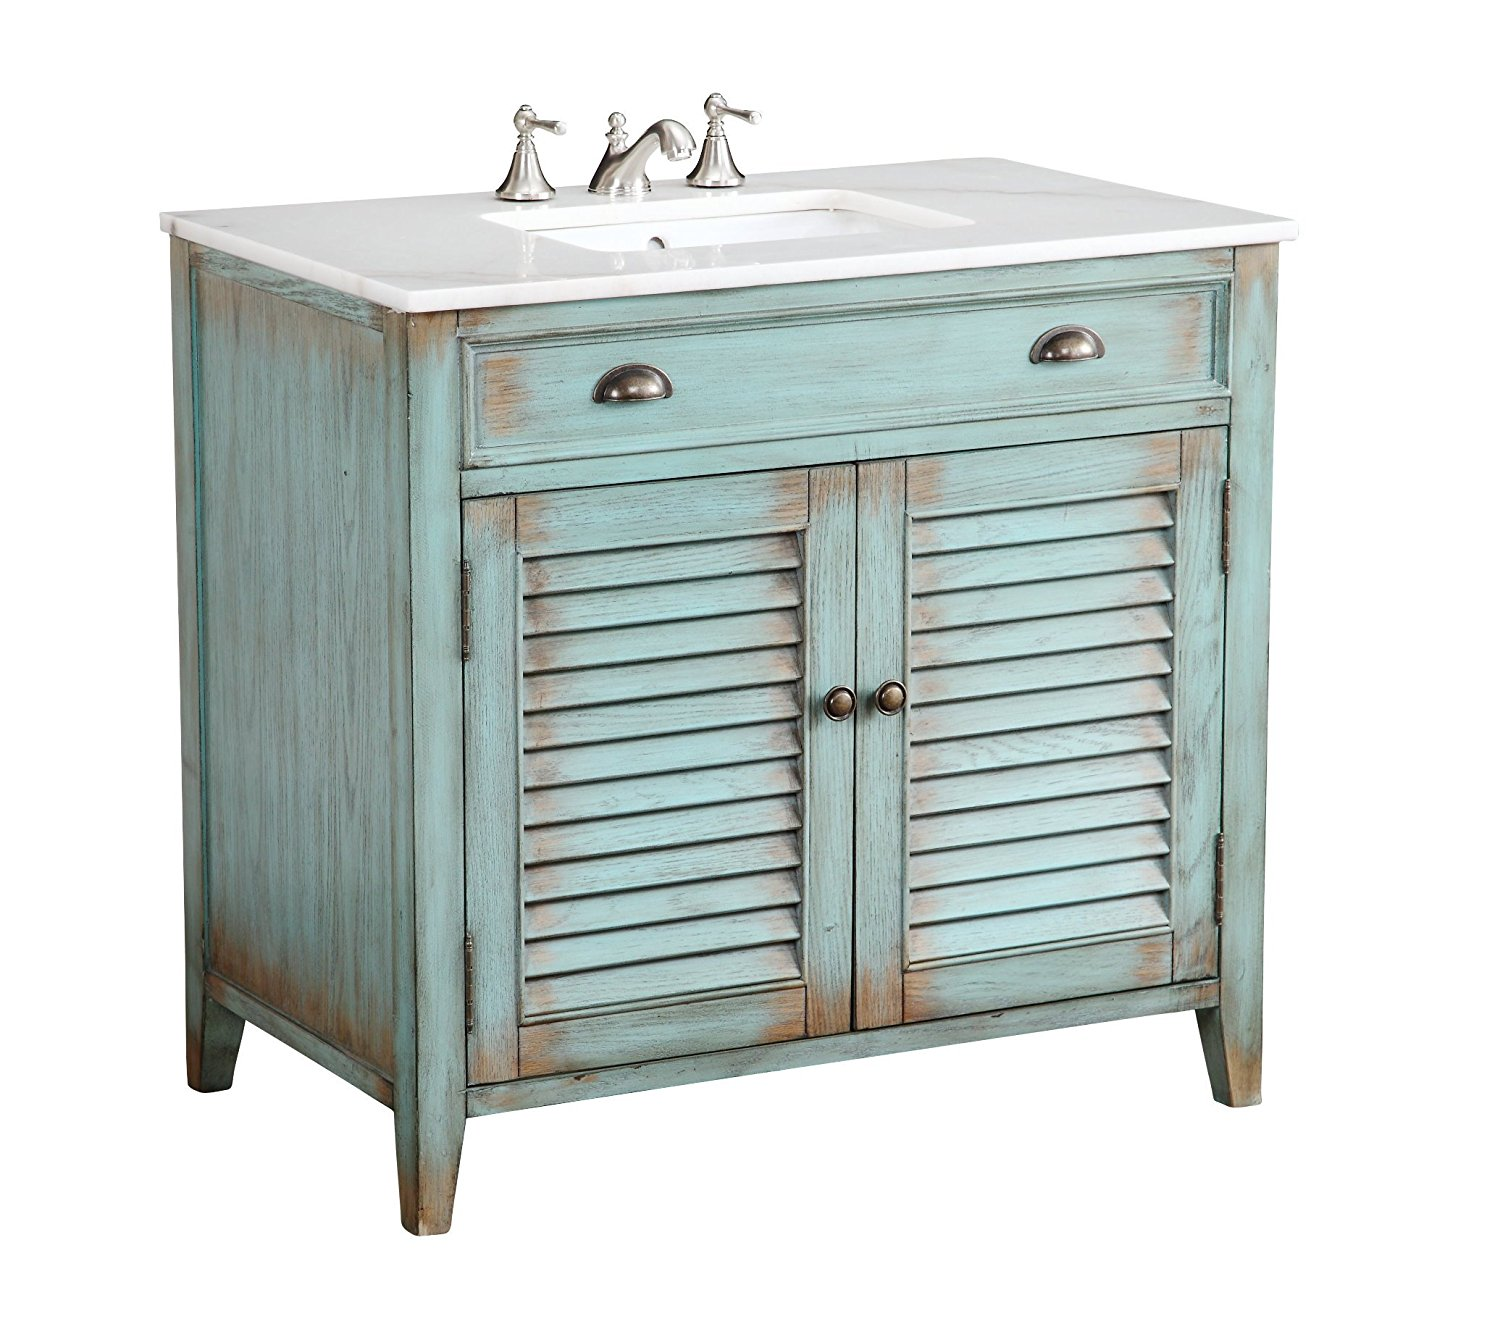 Cool Chans Furniture | Fascinating Mirrored Bath Vanity Styles